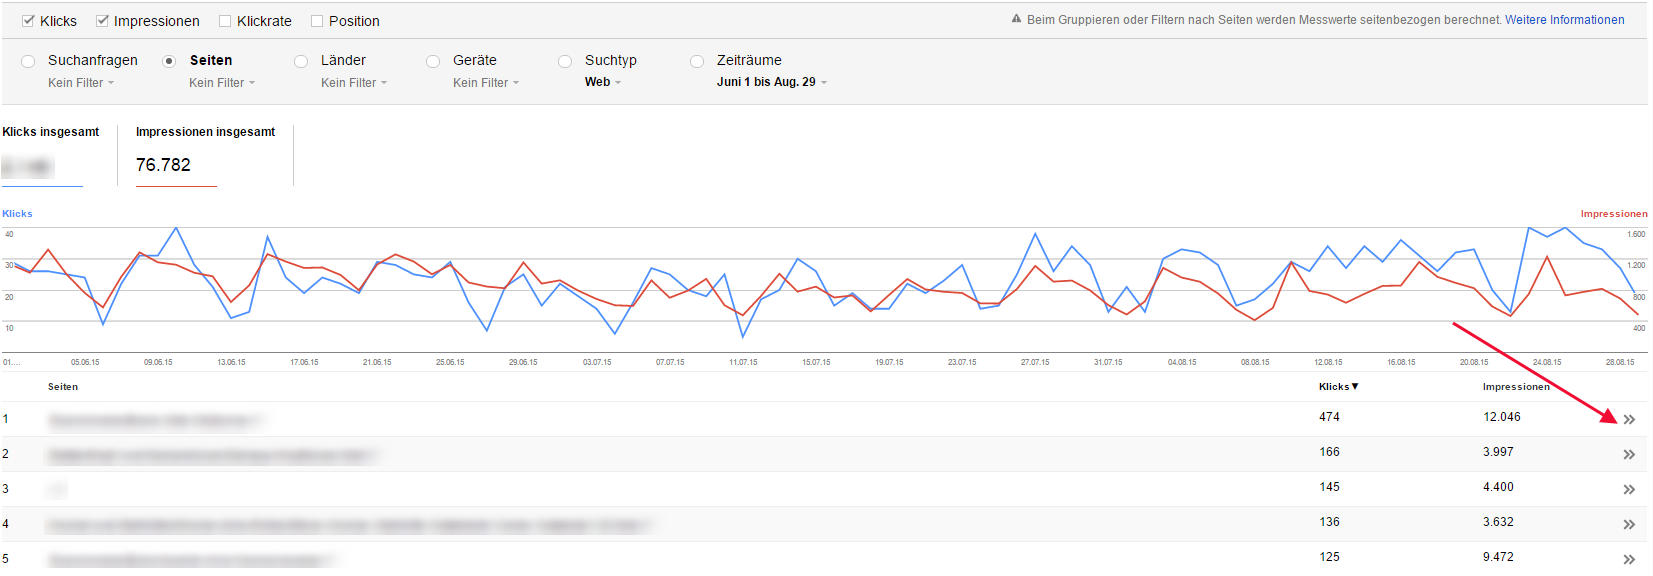 Keyword-Analyse Google Search Console Seitenimpressionen